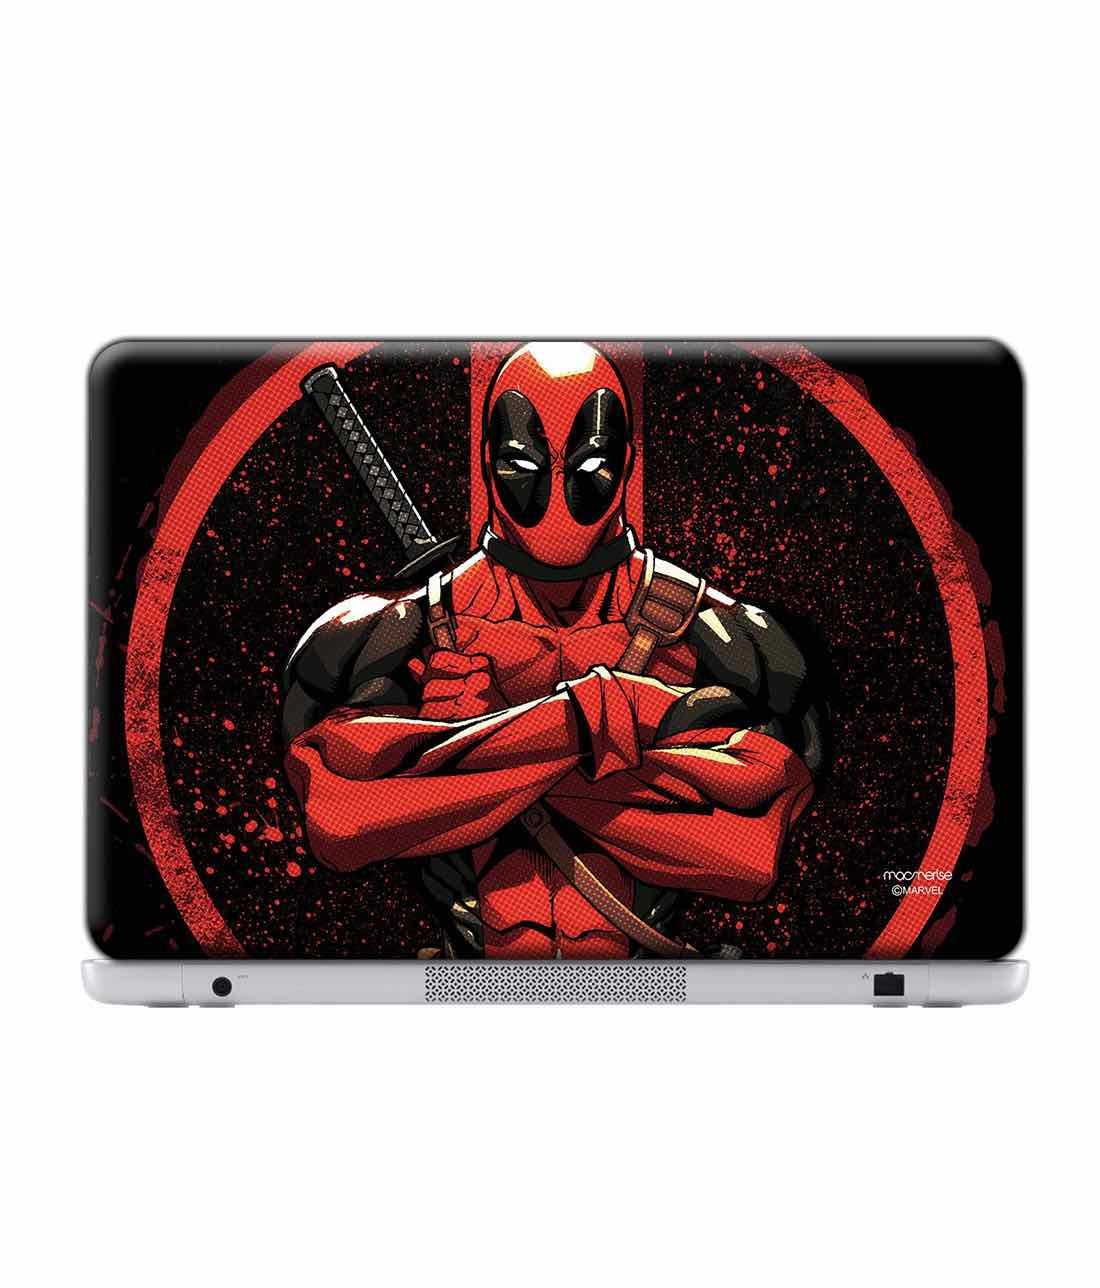 Deadpool Stance Laptop Skin by Macmerise -Macmerise - India - www.superherotoystore.com